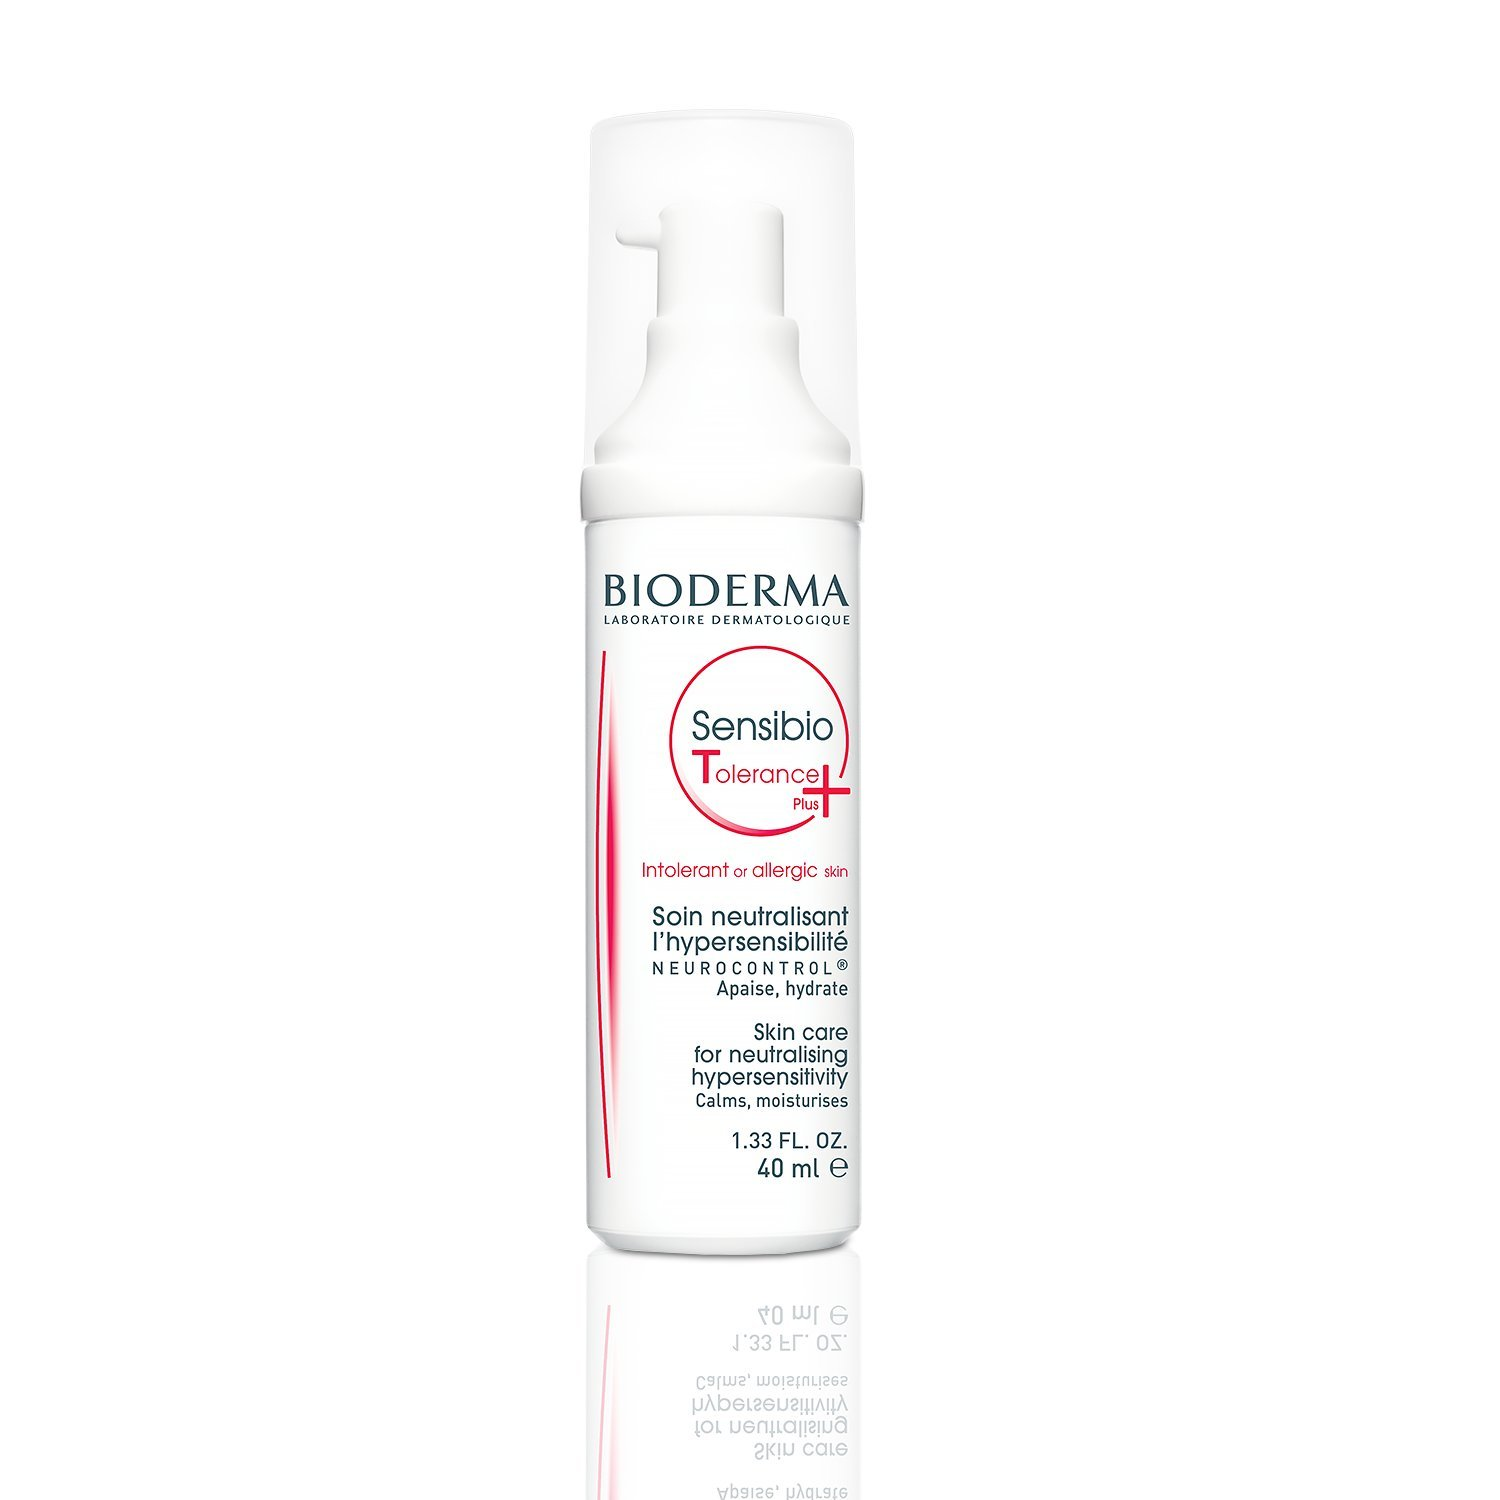 Sensibio Tolerance Plus 40 Ml Bioderma s.l 28725